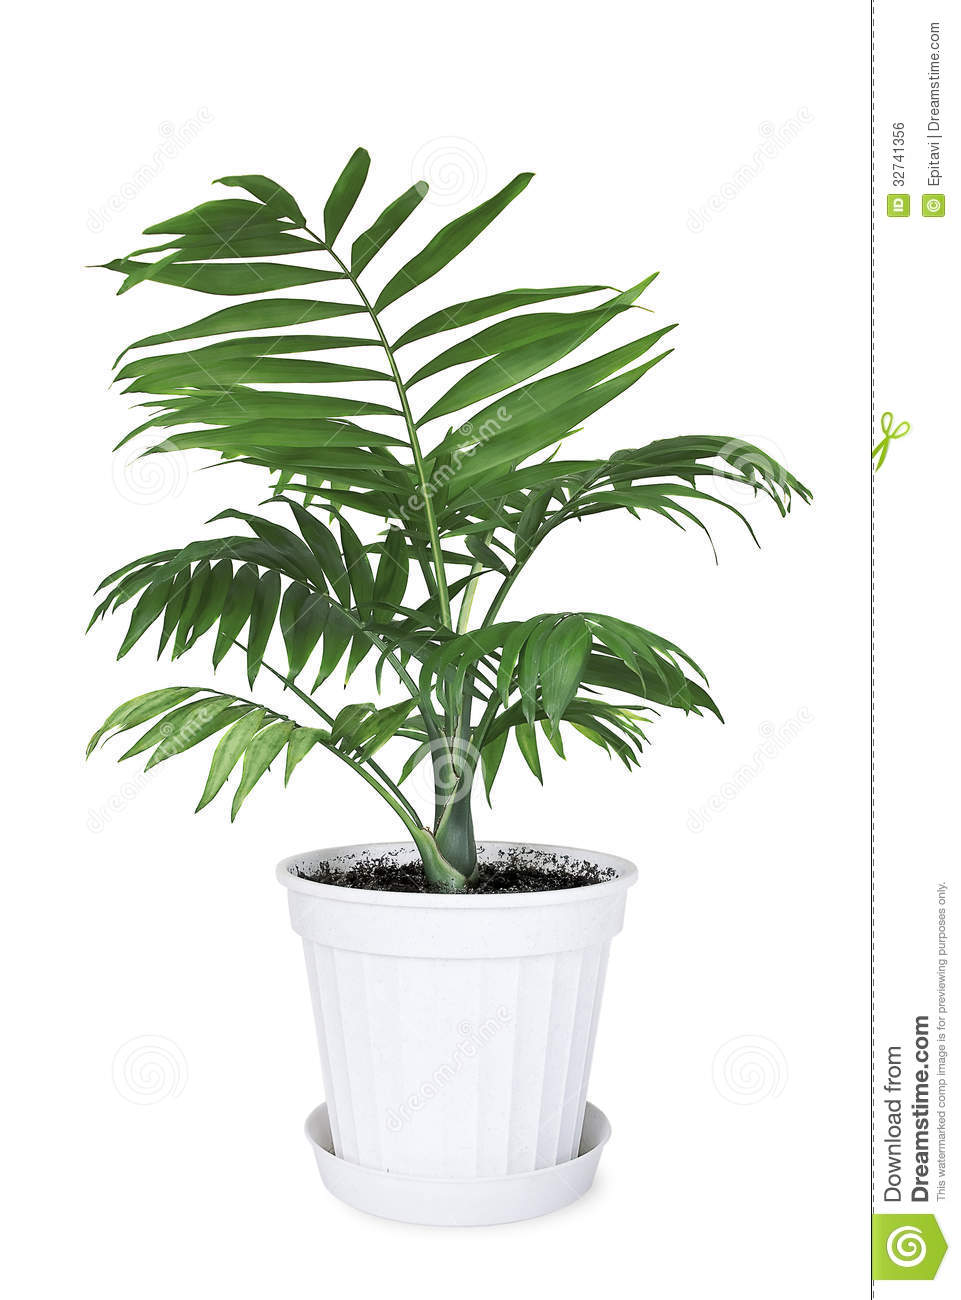 House plant chamaedorea in a flower pot royalty free stock image image 32741356 - White flowering house plants ...